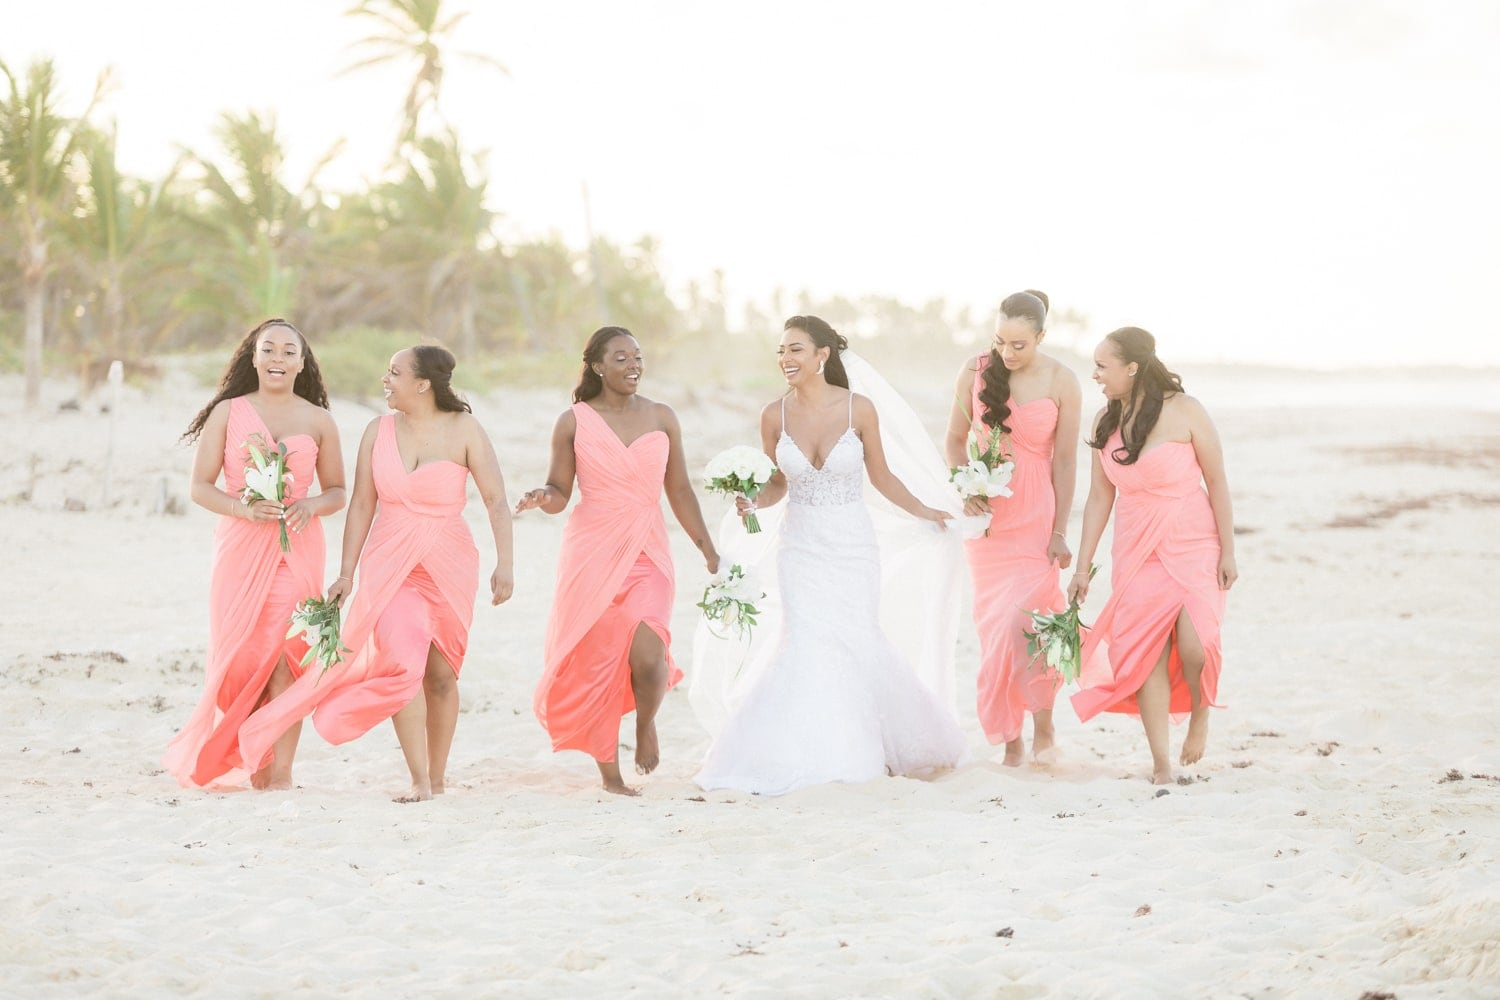 Bride and bridesmaids walking on beach at Hard Rock in Dominican Republic.